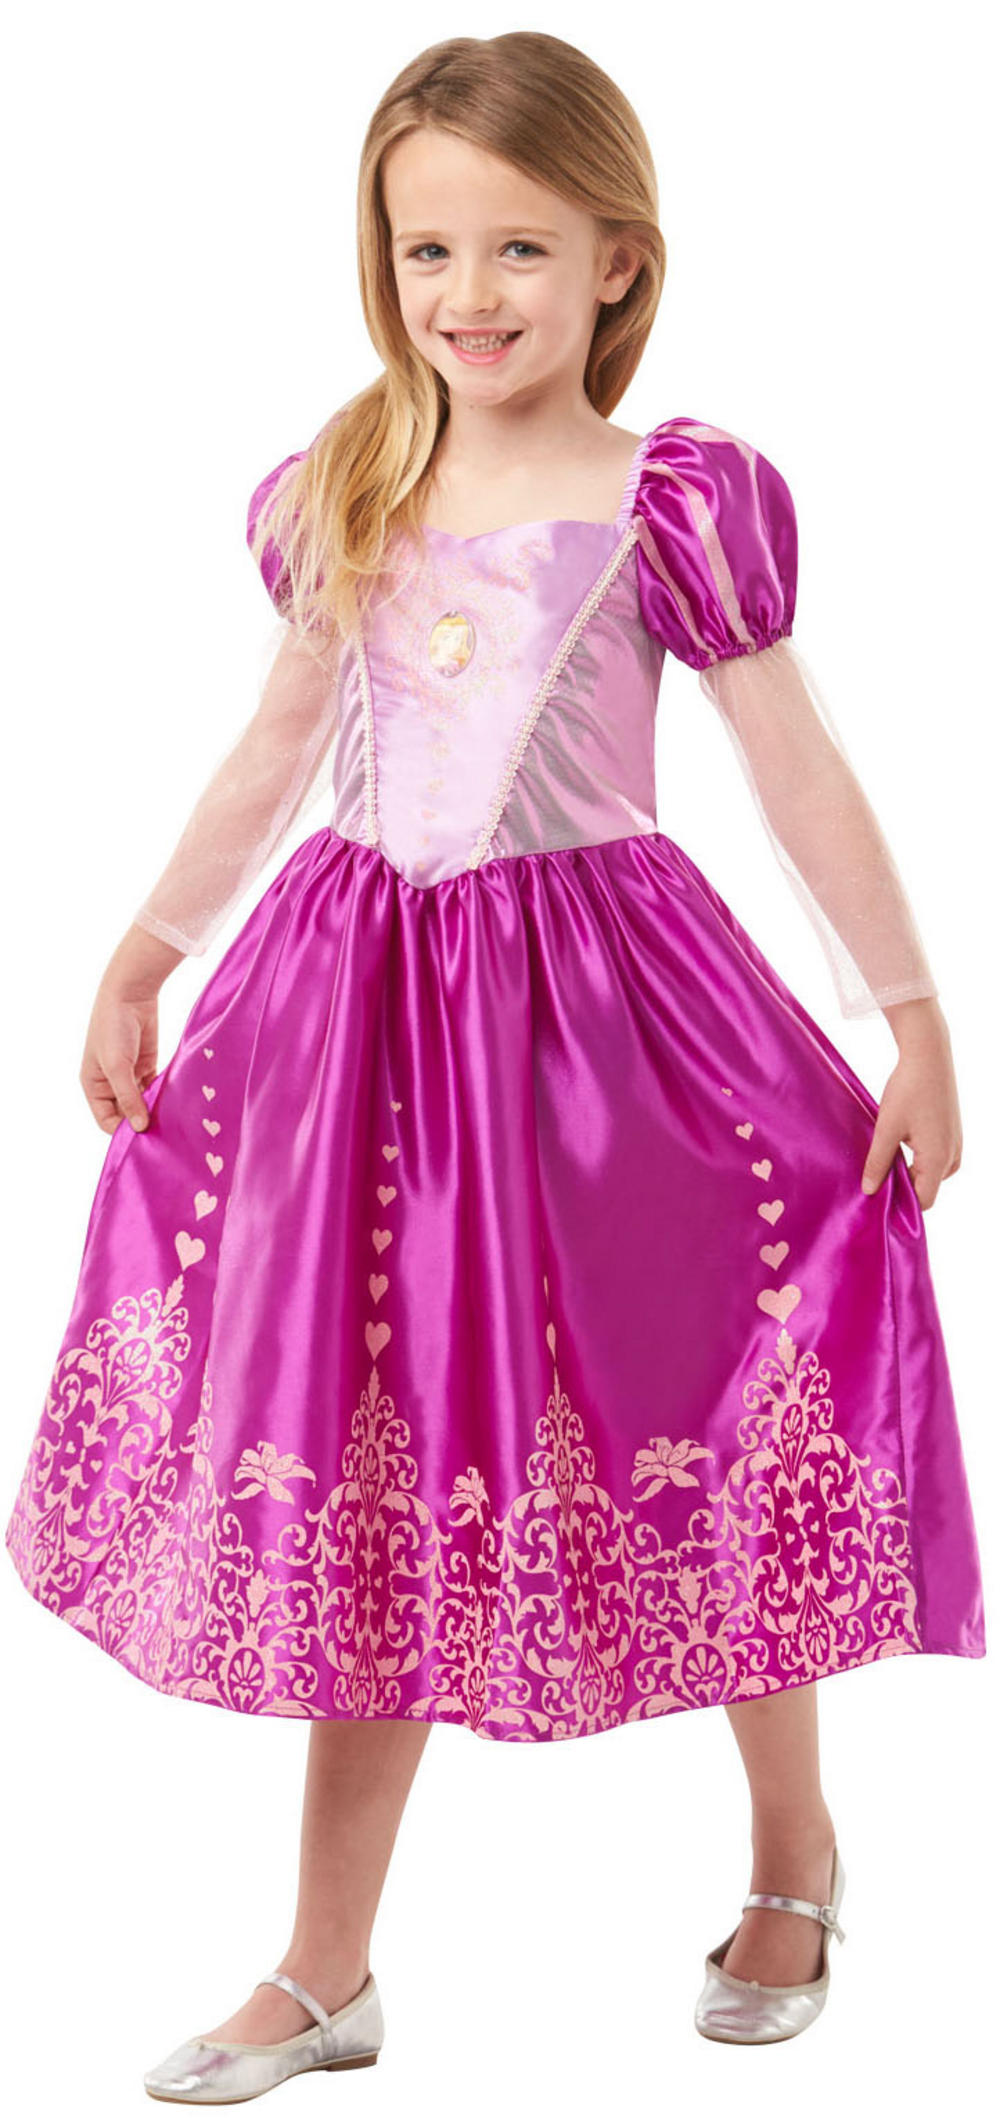 Gem Princess Rapunzel Girls Costume